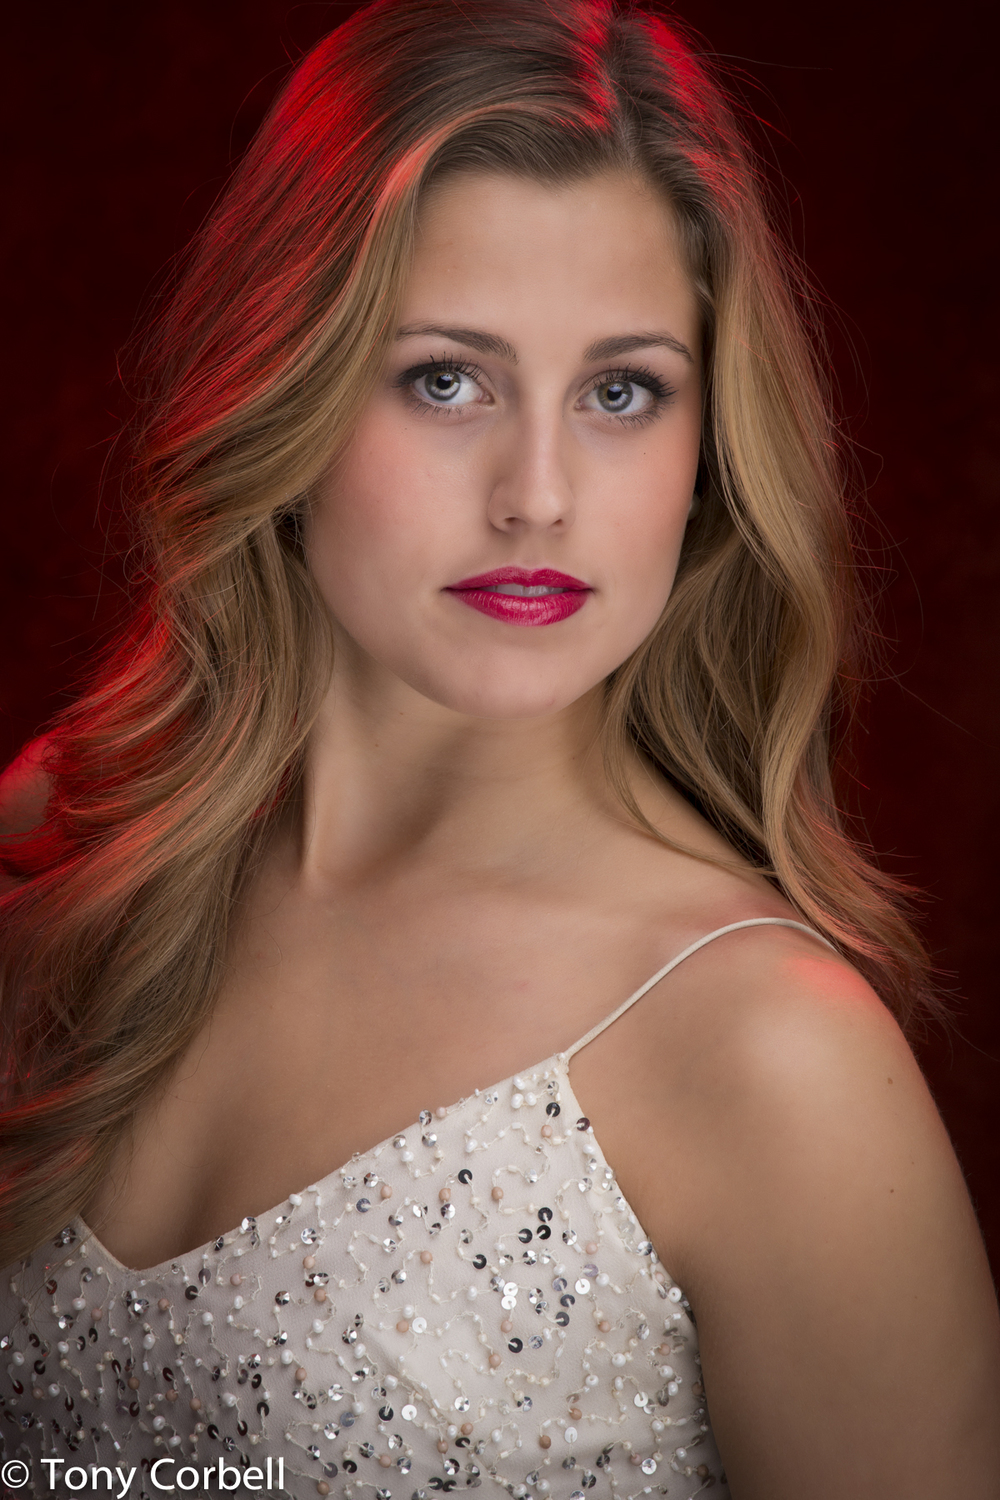 Ms. Kaitlyn York beautifully lit with impact provided by not only the lighting scheme but also the great eye contact.